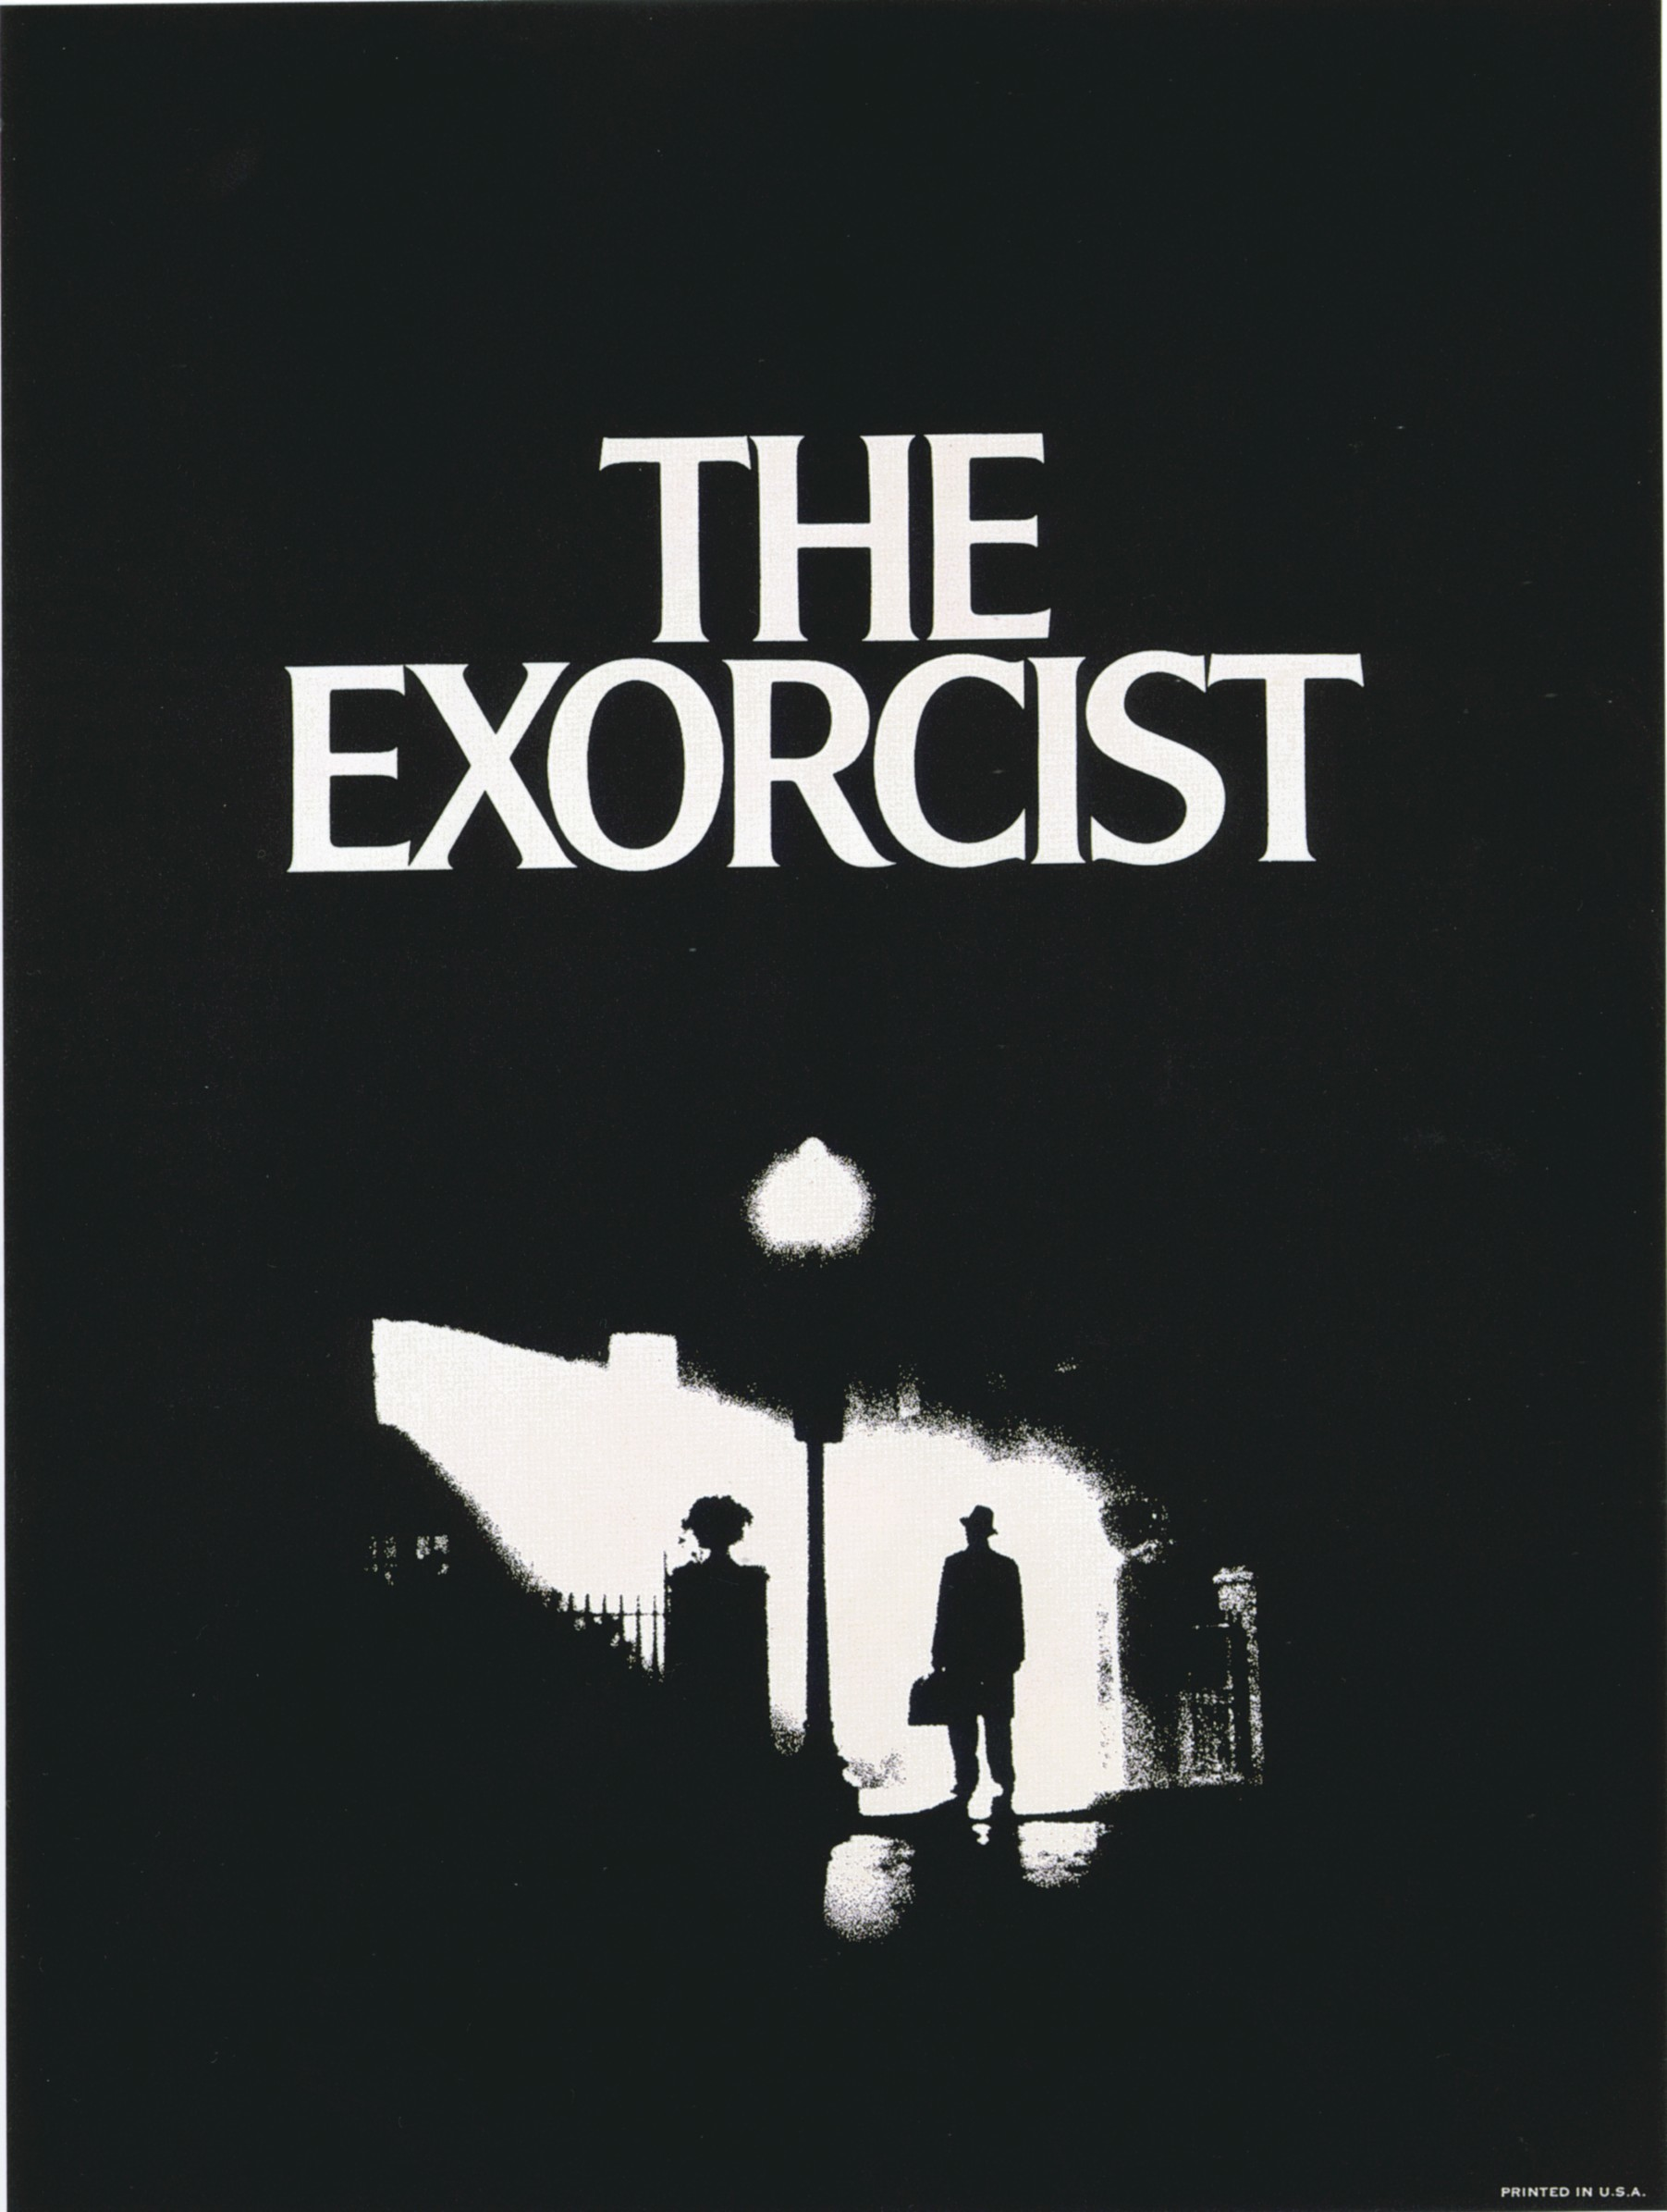 Movies The Exorcist posters